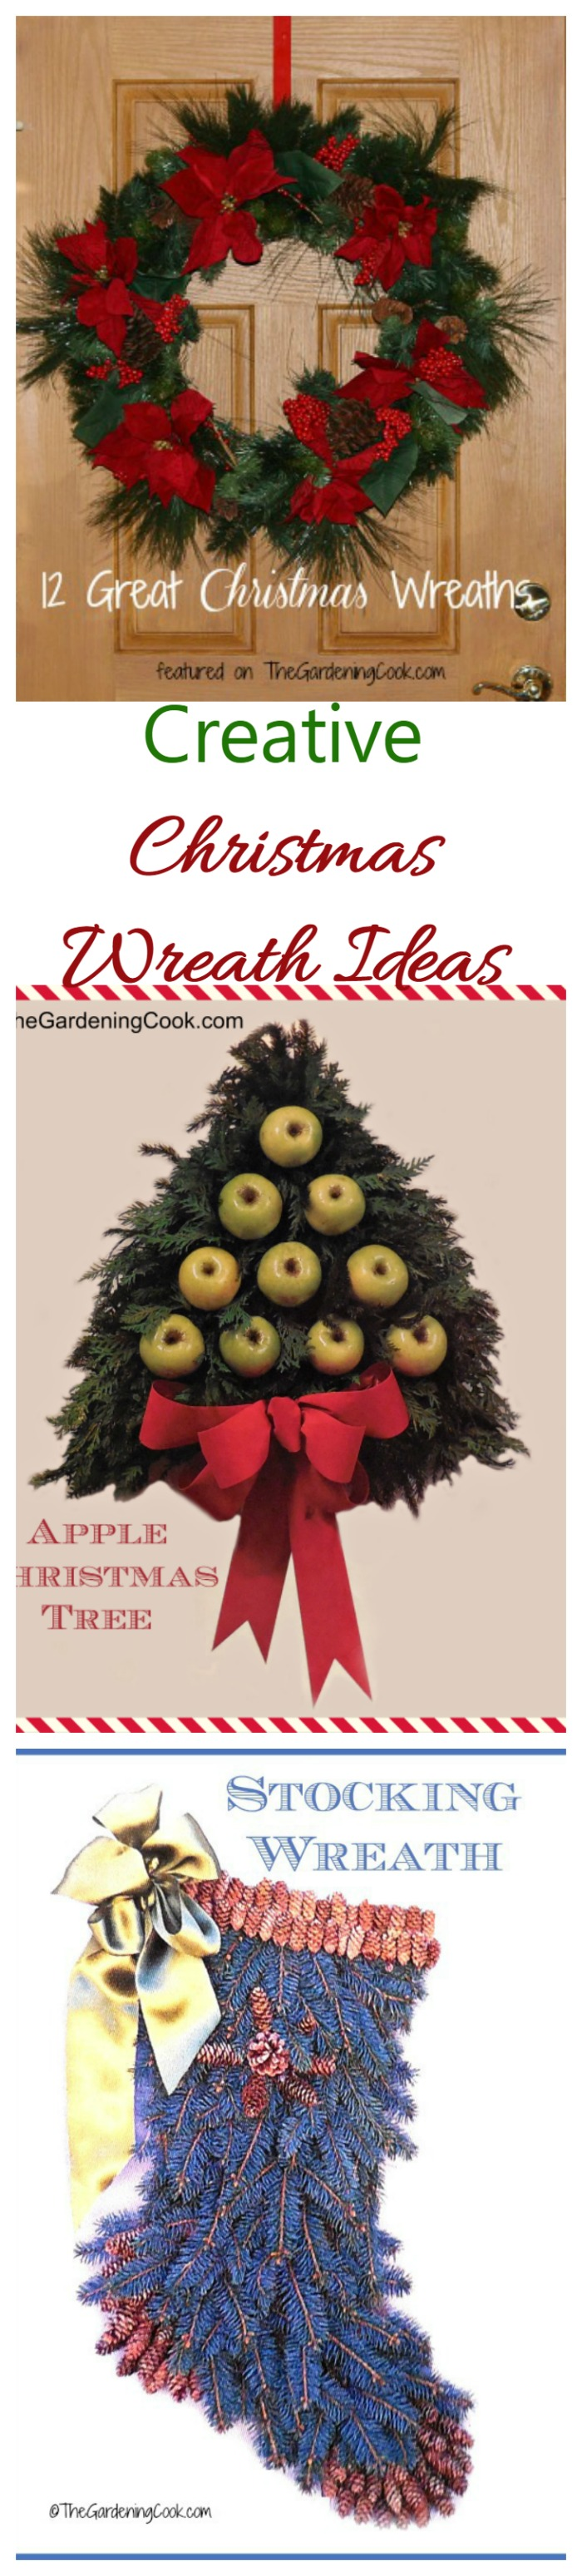 These creative wreath ideas will welcome guests to your home in style. See many more ideas on thegardeningcook.com